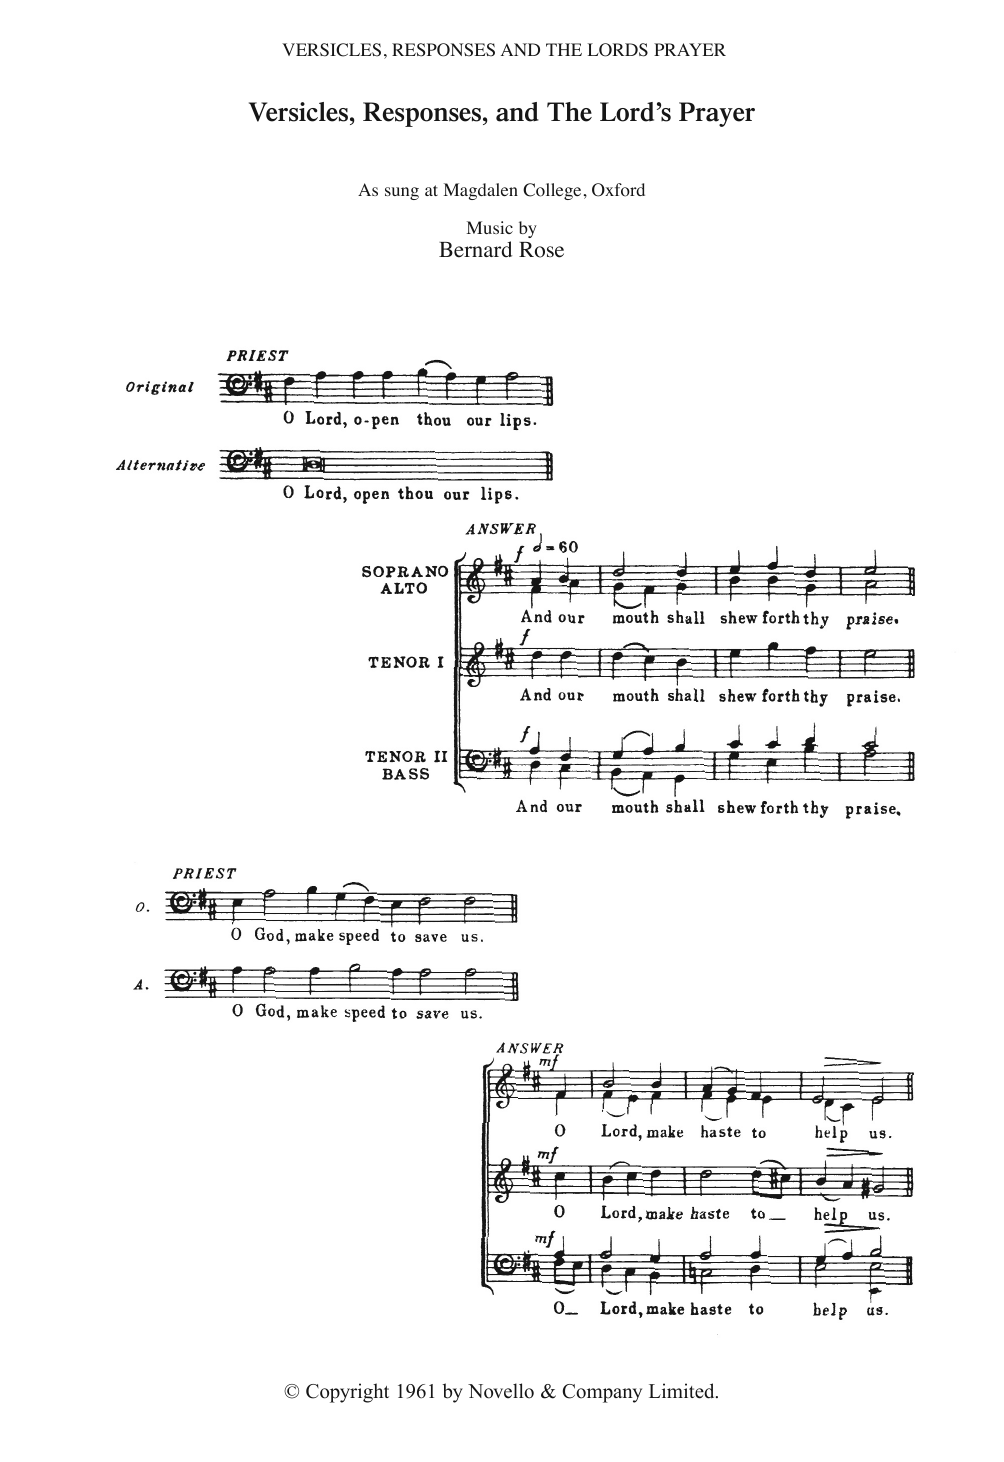 Versicles, Responses And The Lord's Prayer Sheet Music